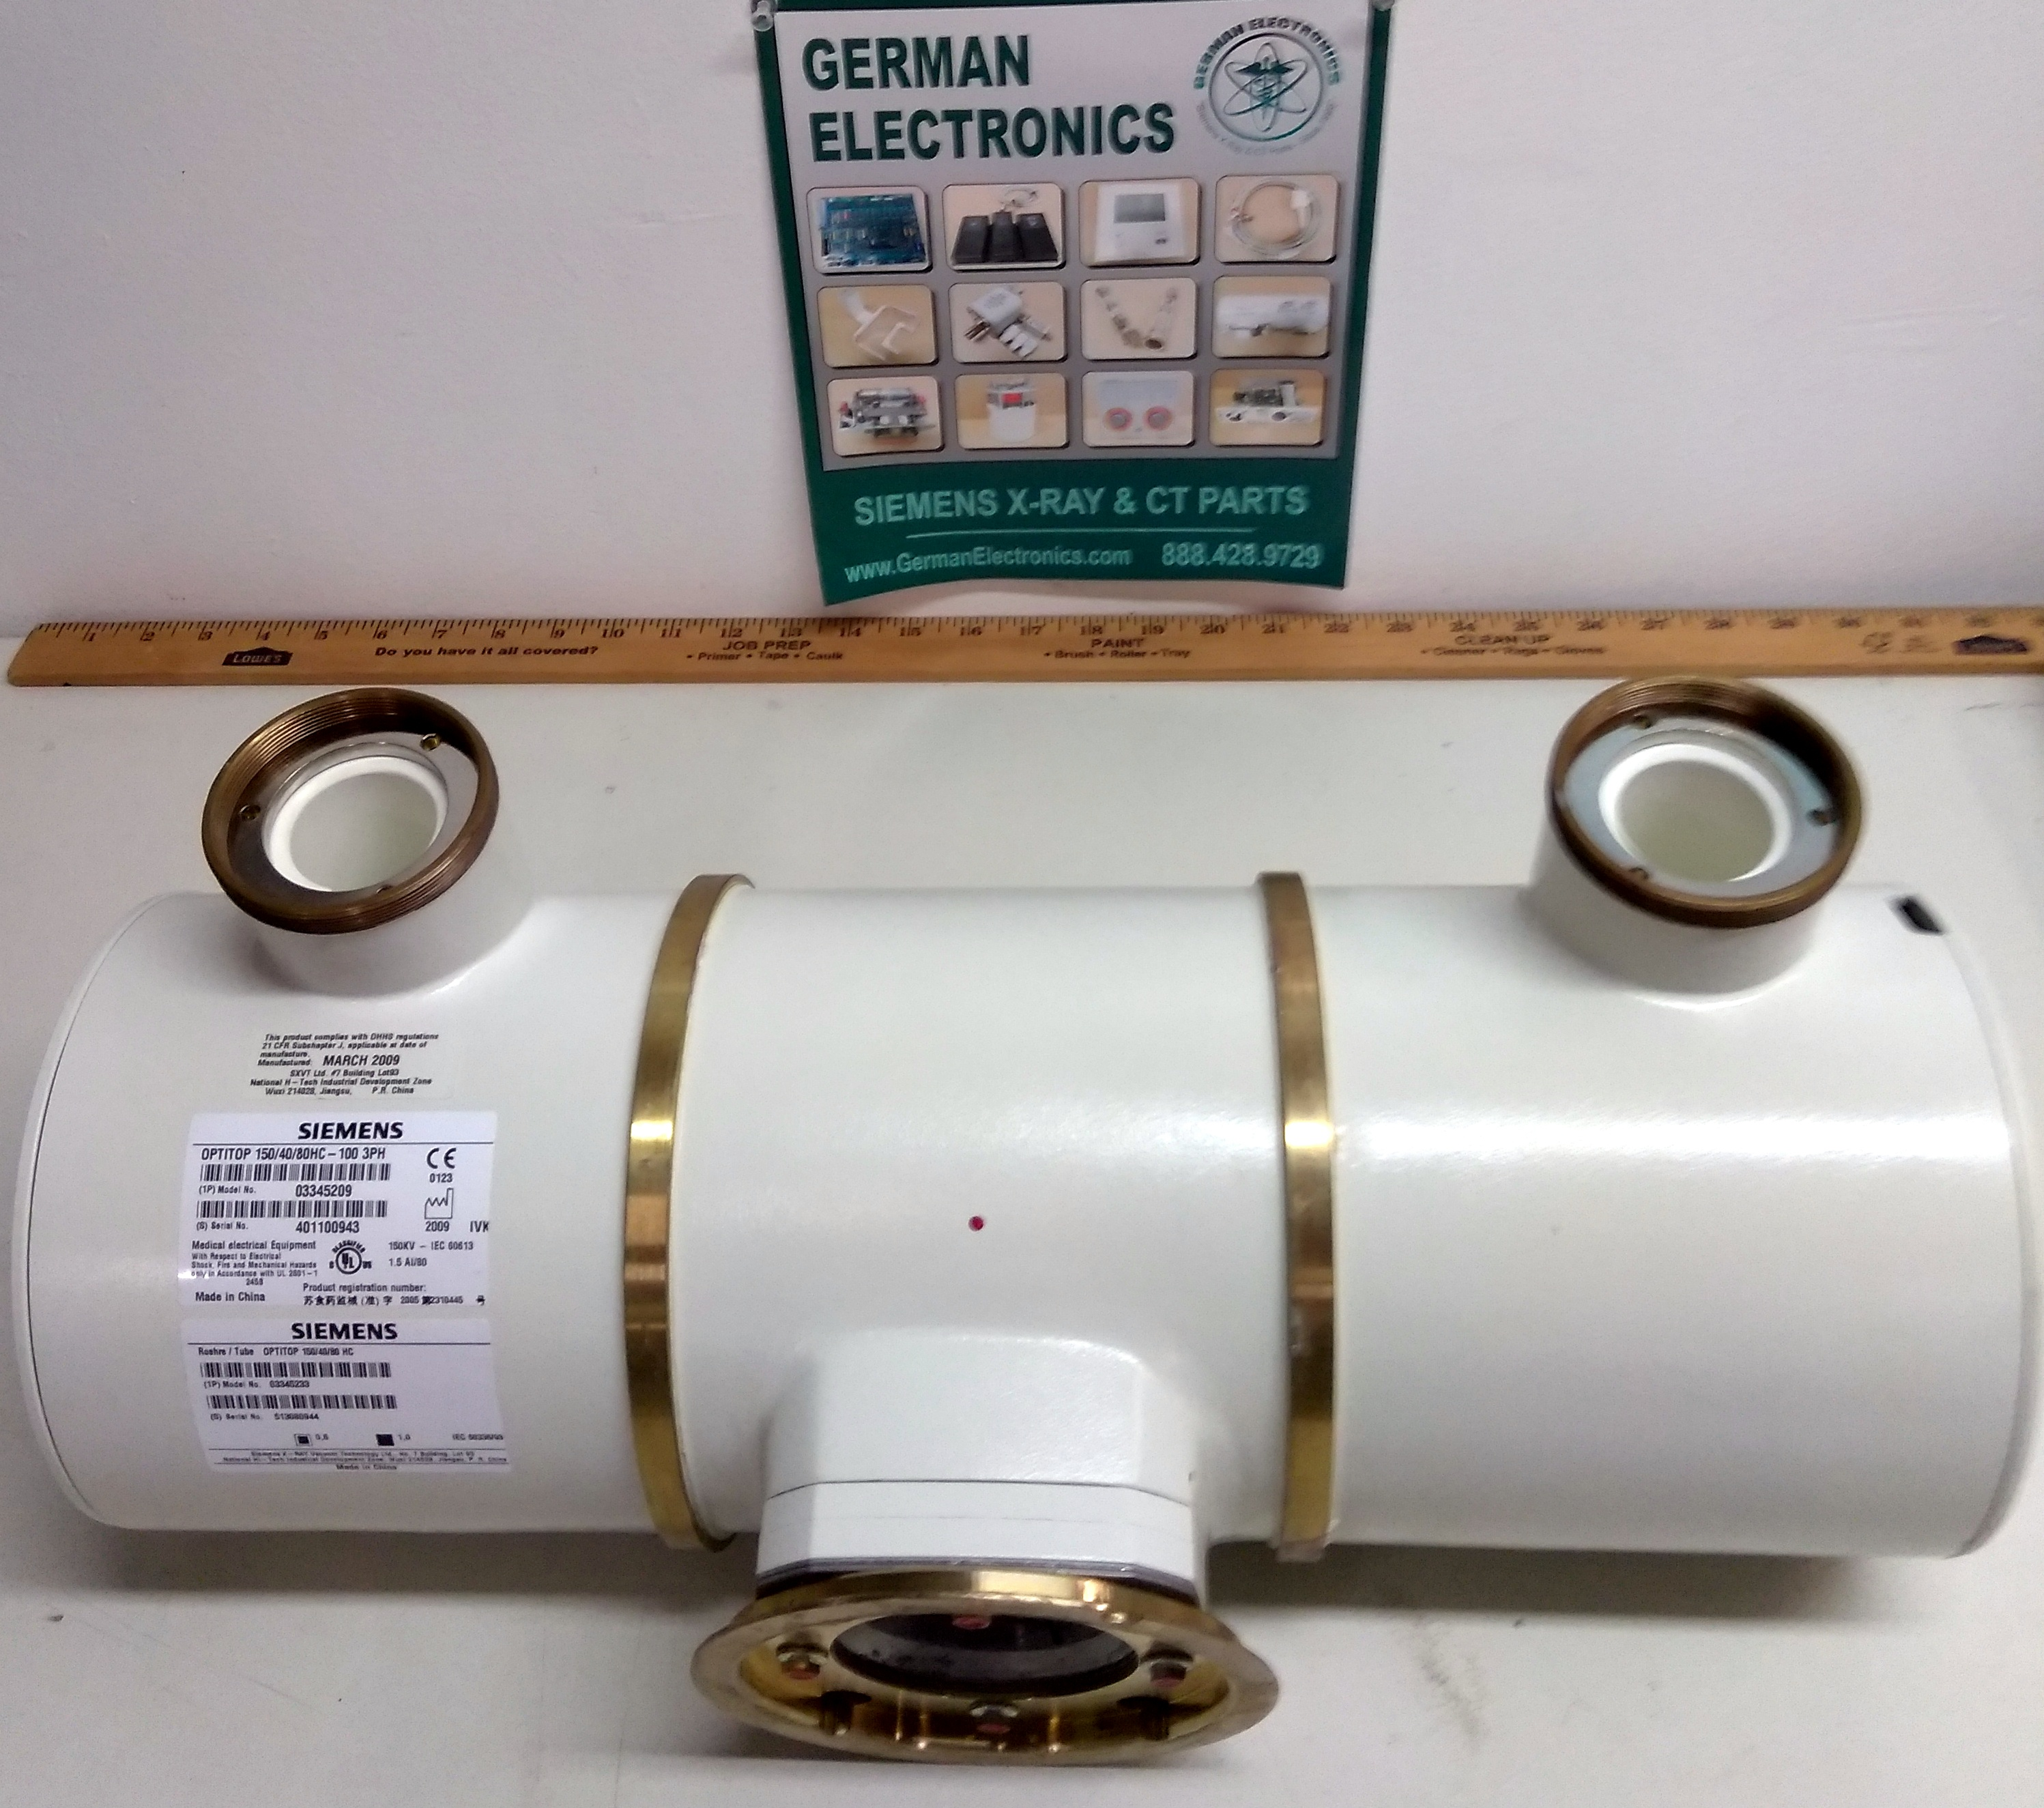 SIEMENS X-RAY TUBE FOR SALE